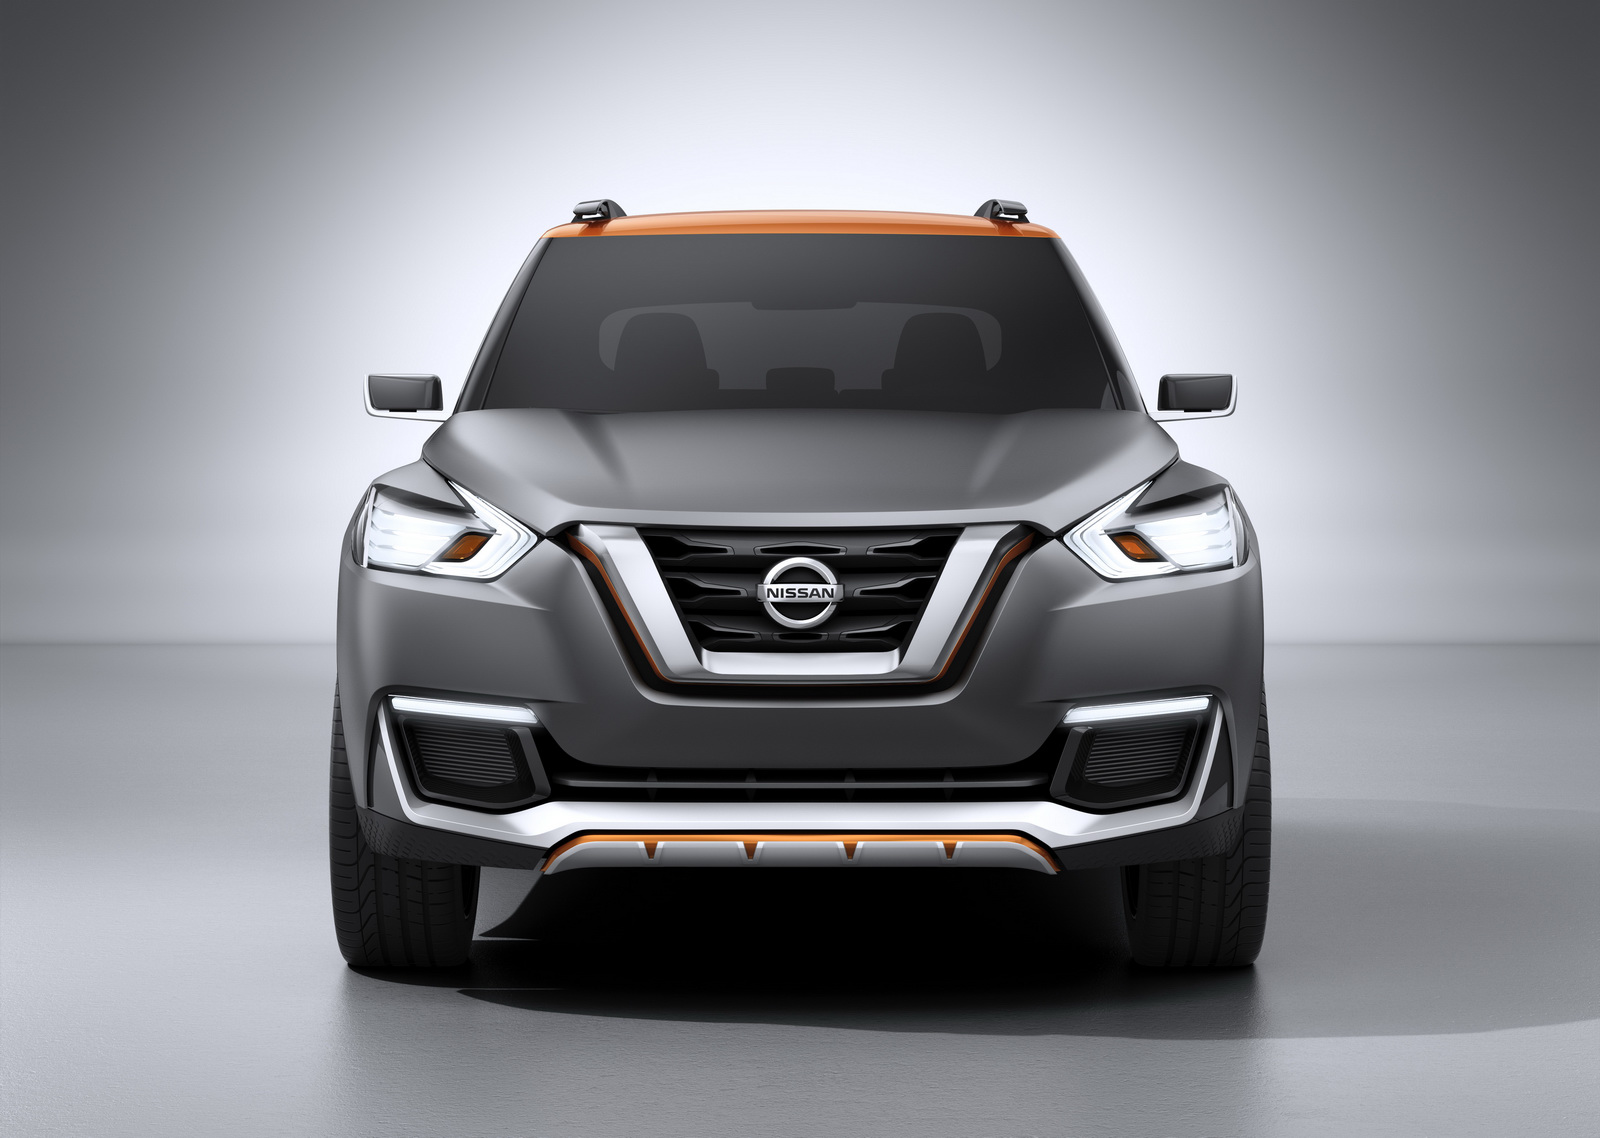 Nissan Kicks SUV to Debut in 2016 as the Official Car of ...